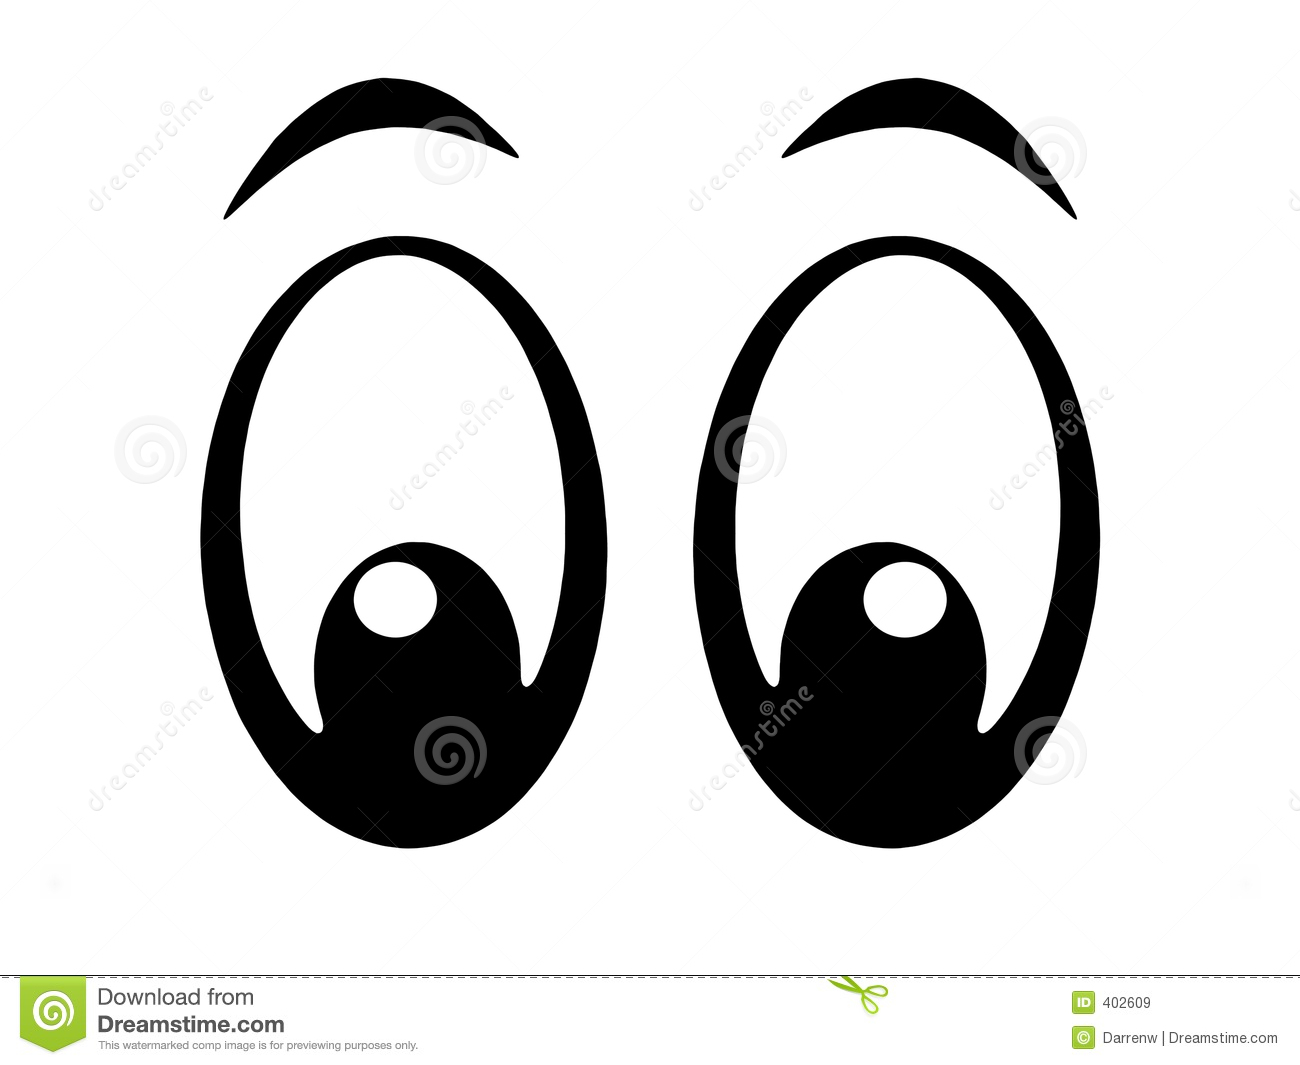 Clipart animal eyes cartoon.